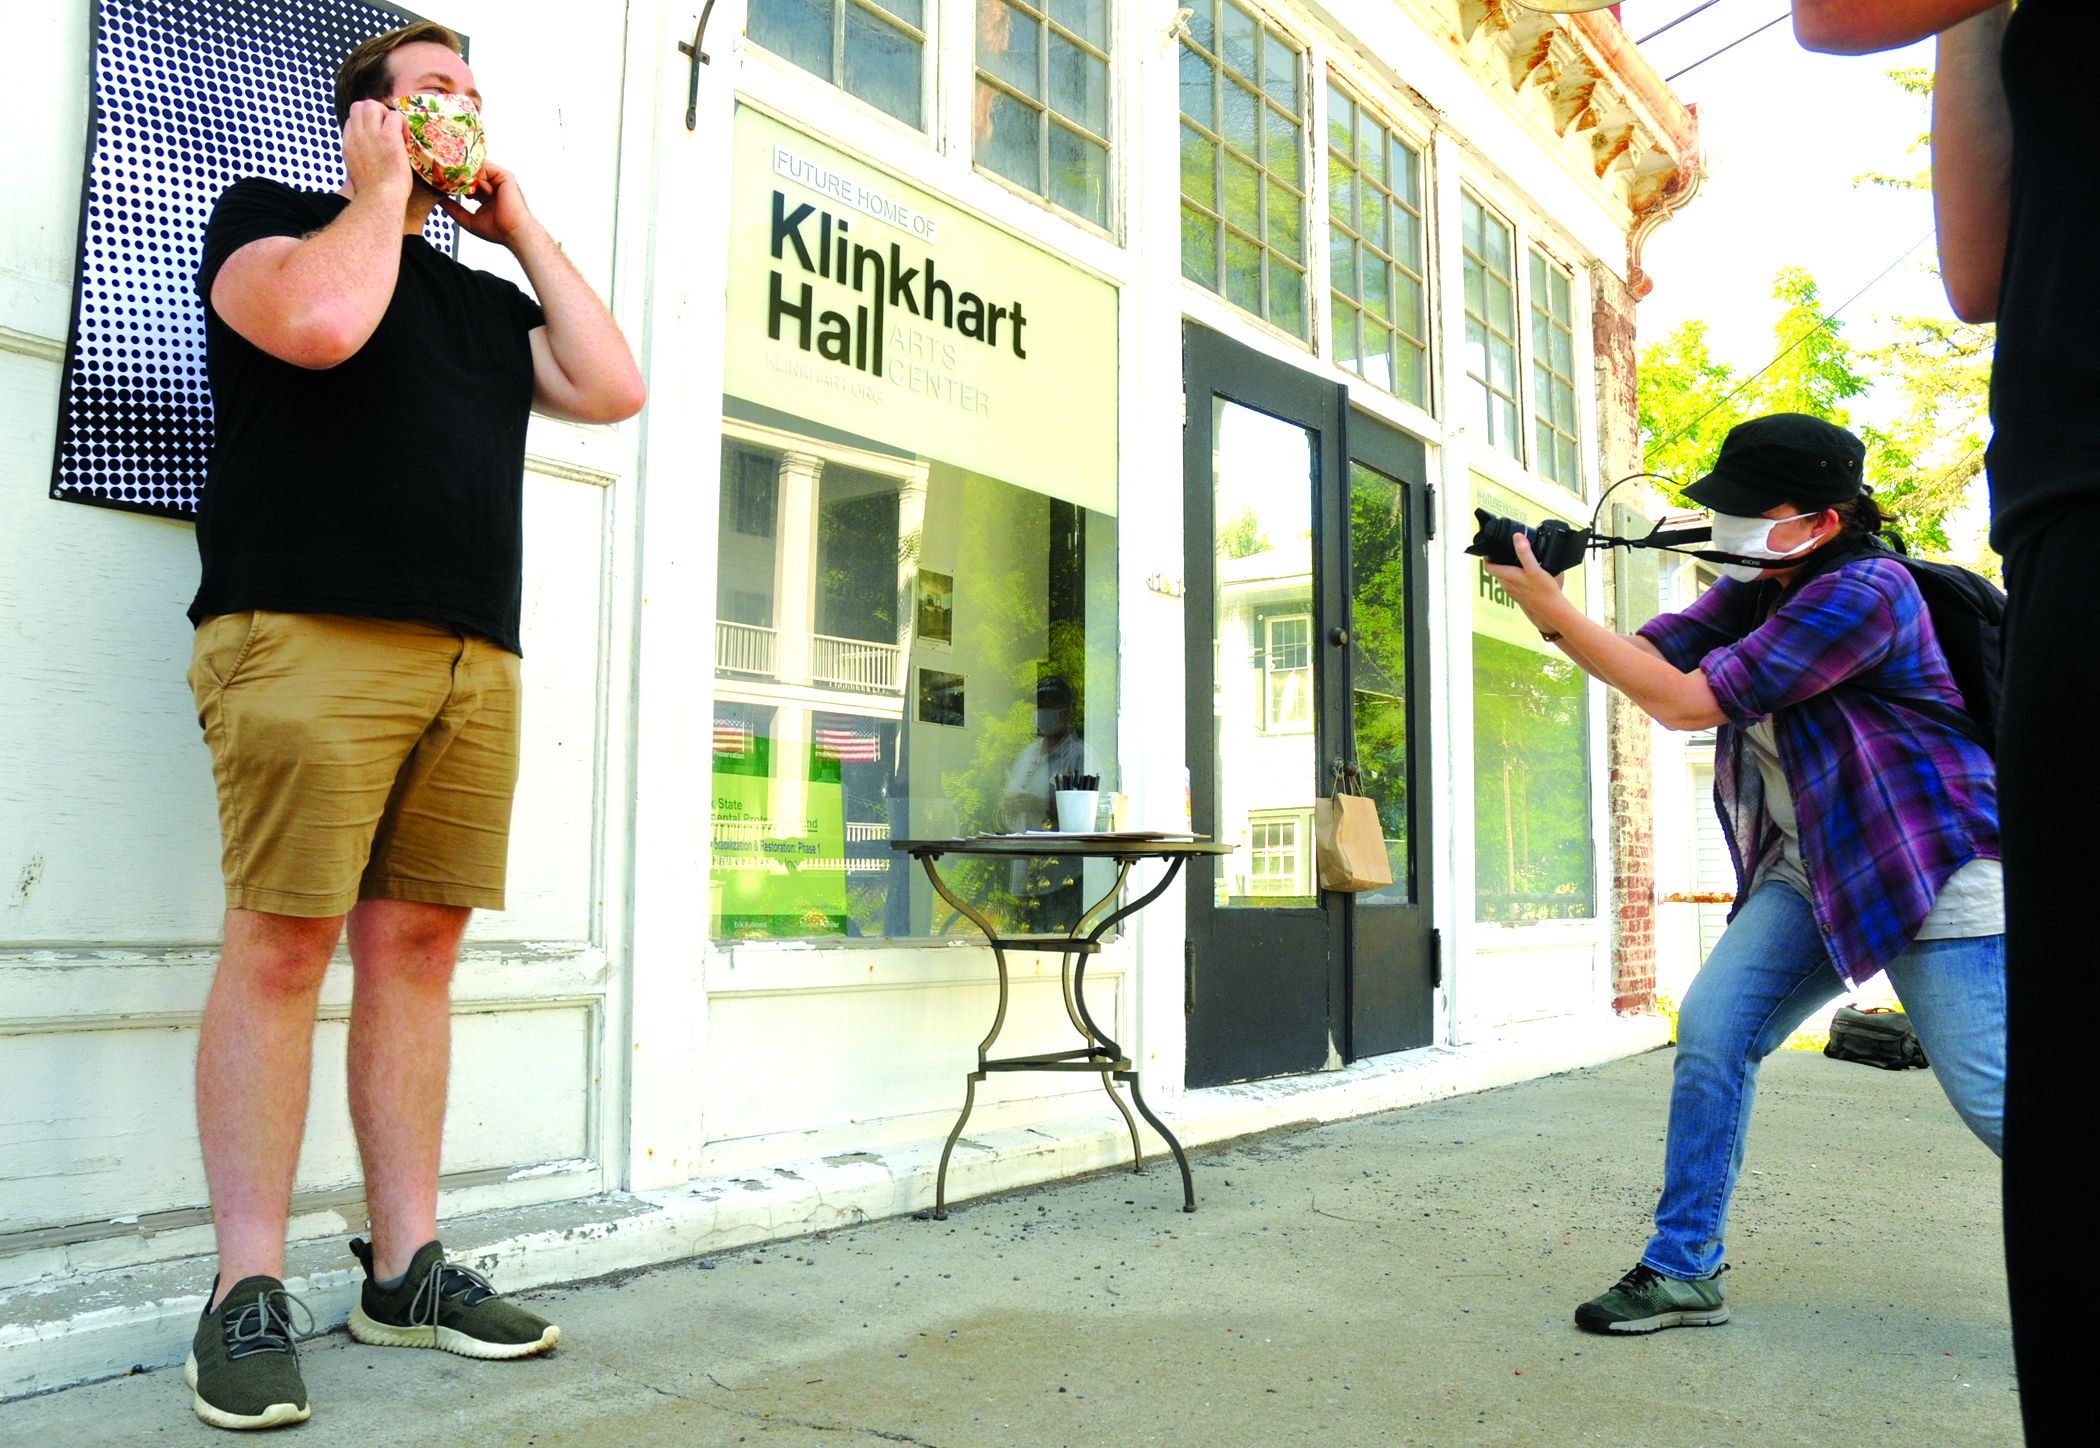 Show us your face: Street art in Sharon Springs